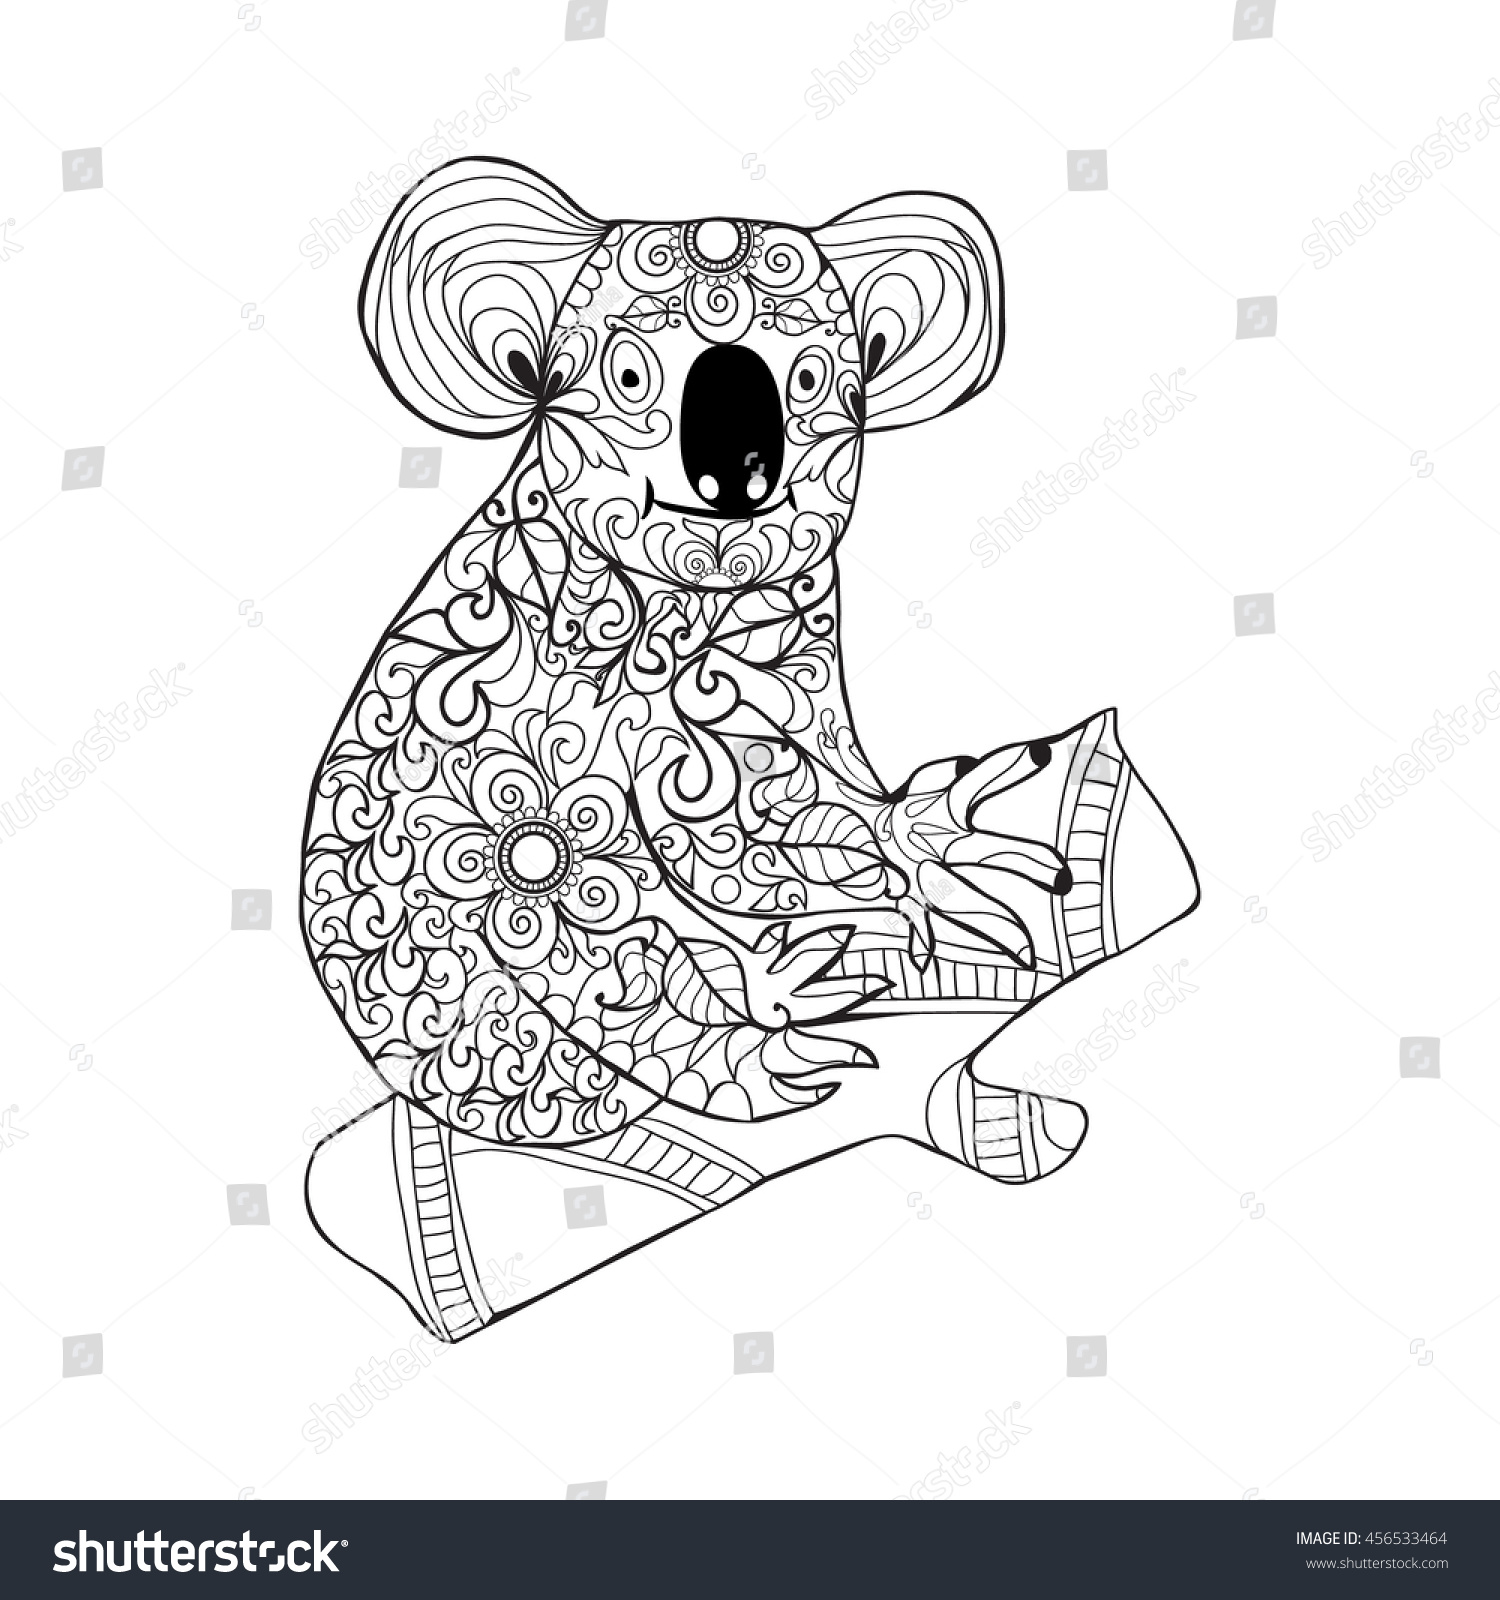 Zentangle Style Koala Black White Hand Drawn Doodle Animal For Coloring Page Shirt Design